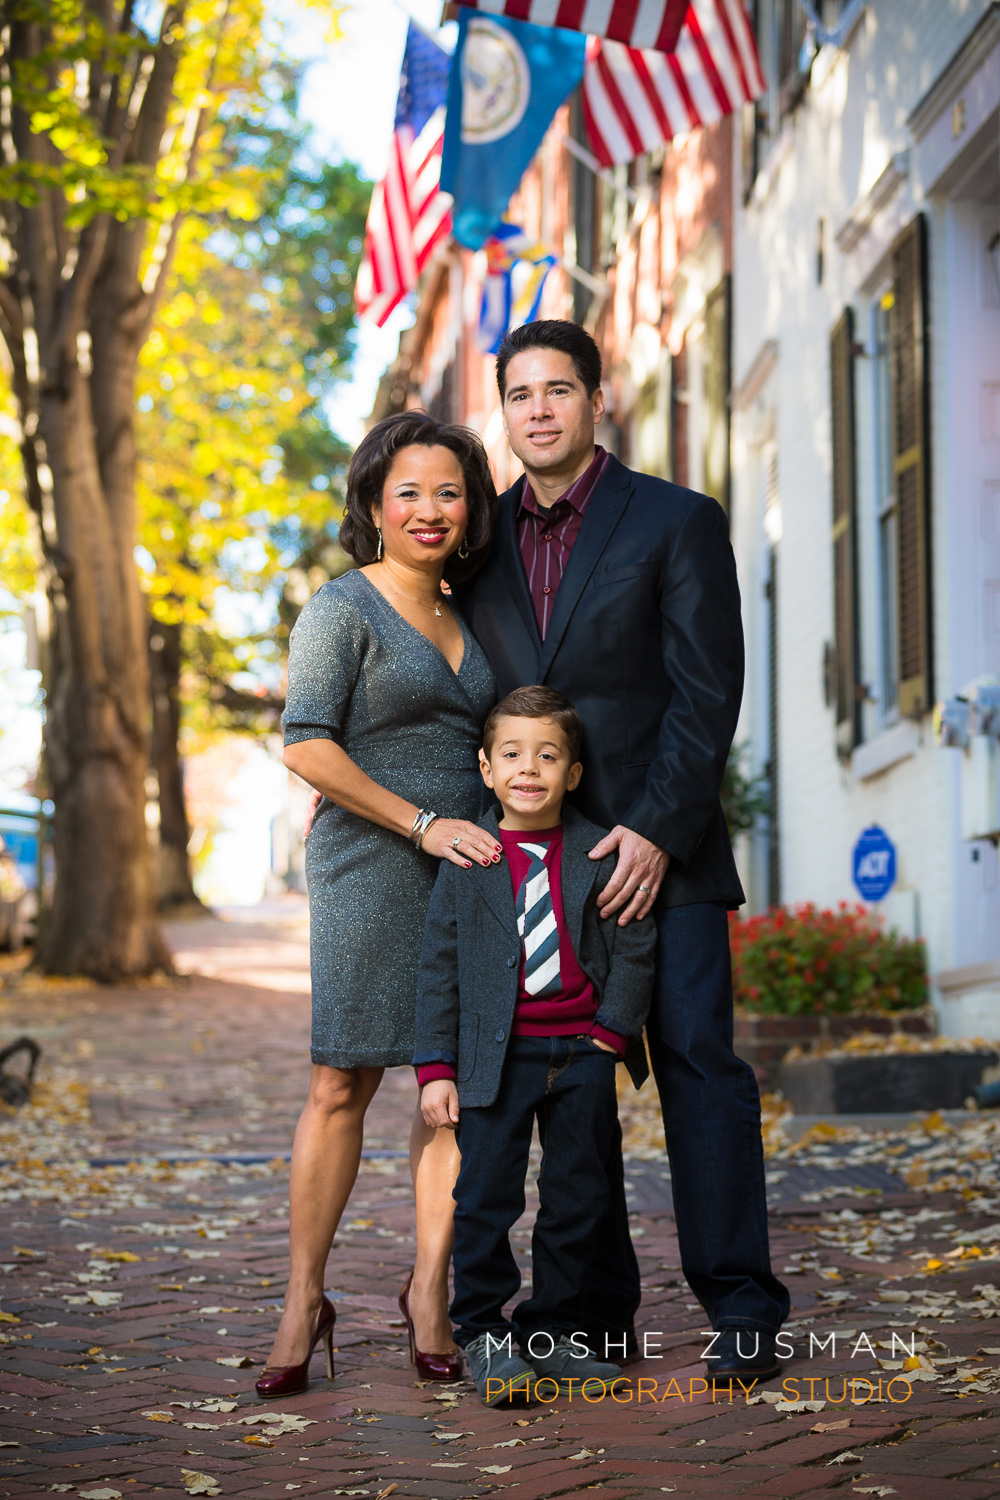 Family-portraits-moshe-zusman-photography-holiday-photos-old-town-alexandria-maurisa-turner-potts-02.jpg